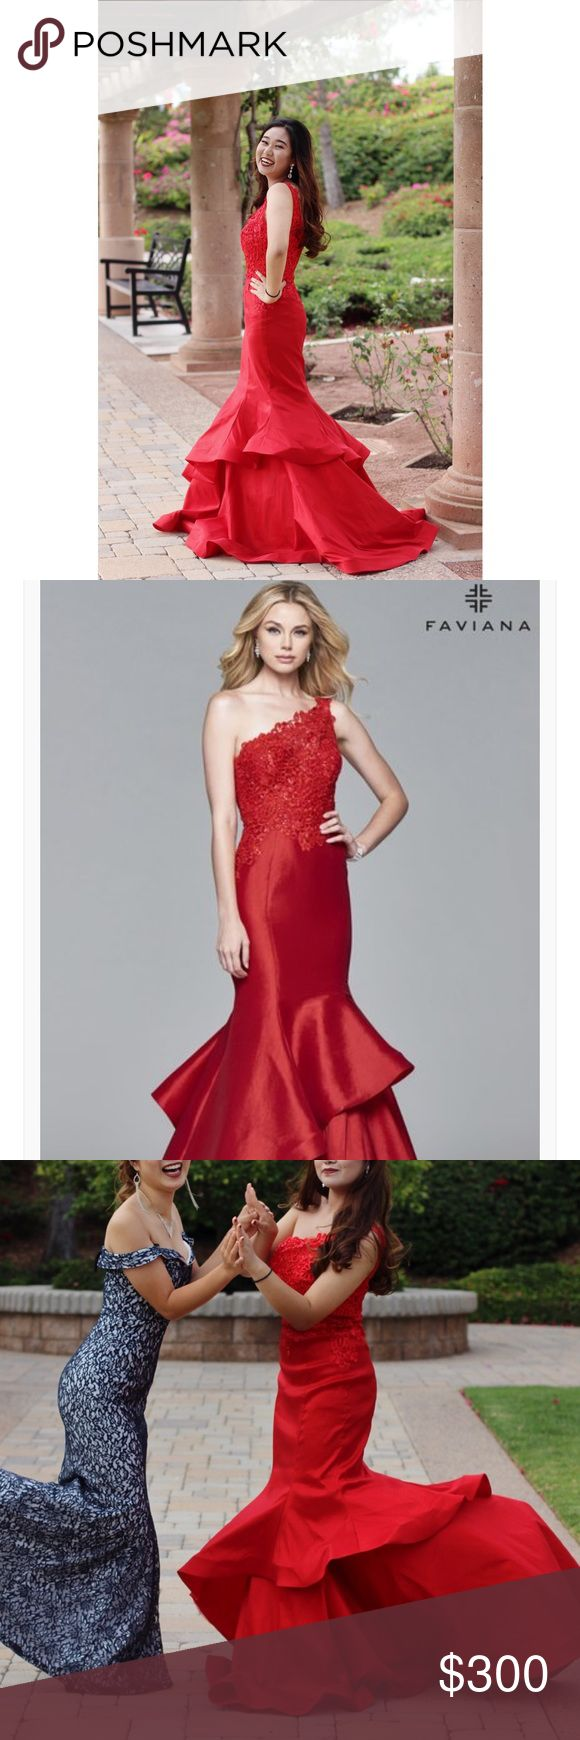 Faviana Red 7970 Dress - Gown GORGEOUS worn once (on a spacious cruise prom of small private school - around 200 people).   Dress alone is originally $378 but I Paid over $450 for the dress and shipping + service fee.  No alterations made. Original brand name size 8. Faviana Dresses Prom